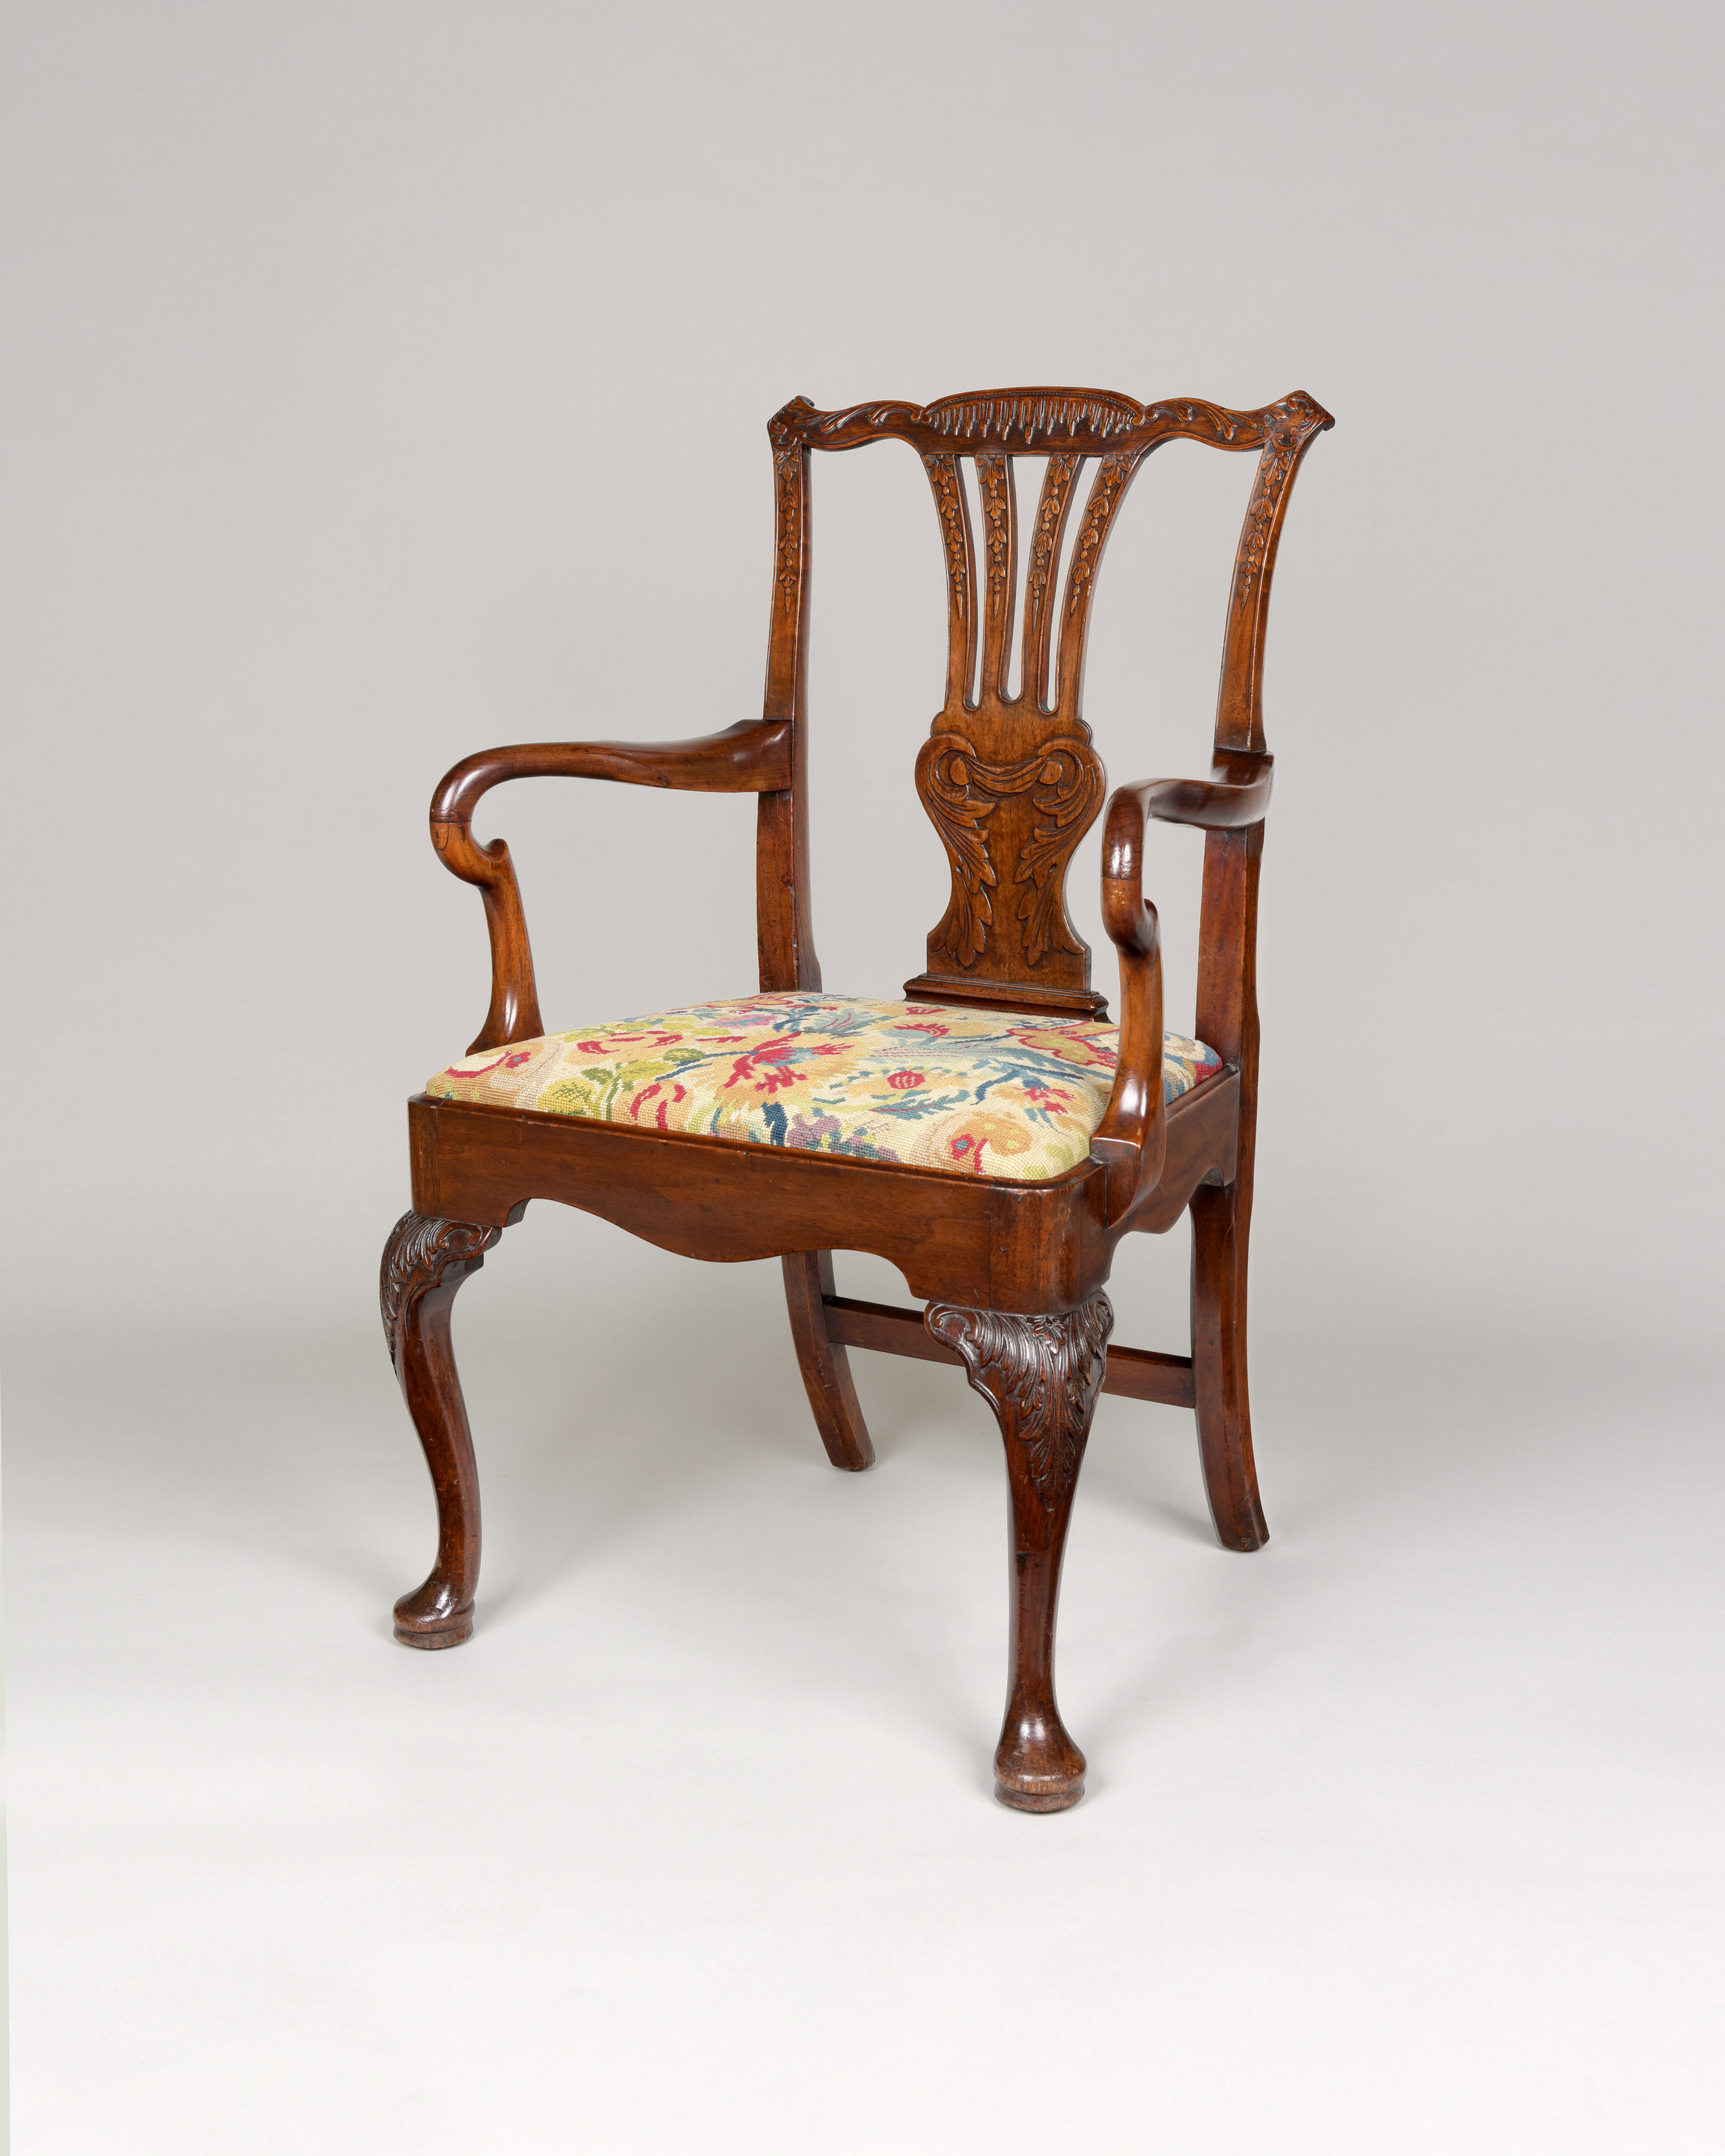 GEORGE II MAHOGANY DESK CHAIR